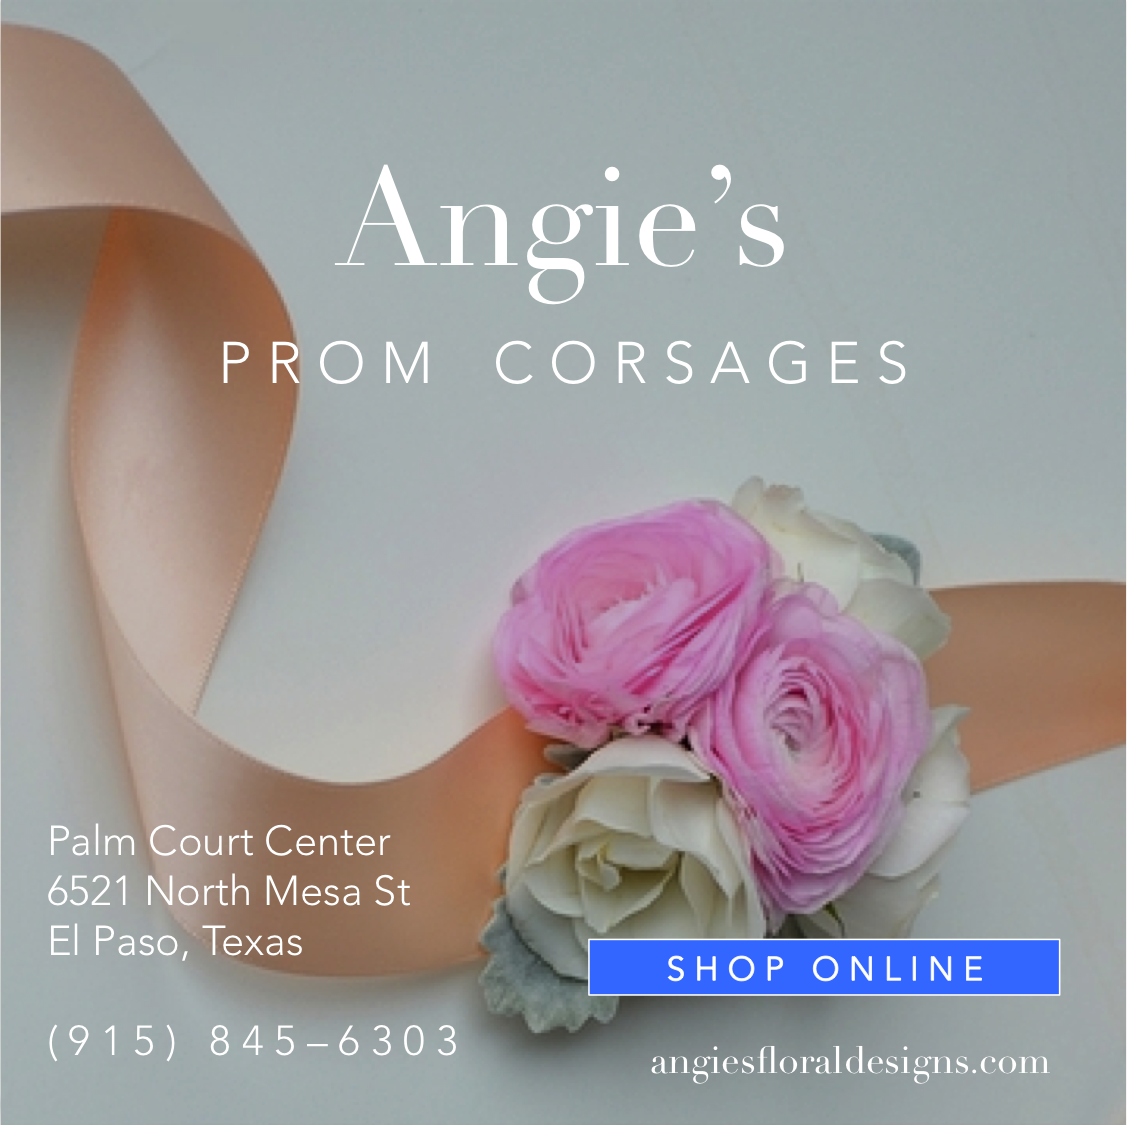 el-paso-florist-flowershop-angies-flower-prom-corsages-wrist-corsages-el-paso-texas-flowershop-79912-angies-floral-designs-wrist-corsages-wristlet-corsage-el-paso-prom-coronado-high-school-franklin-el-paso-high-school-prom.png